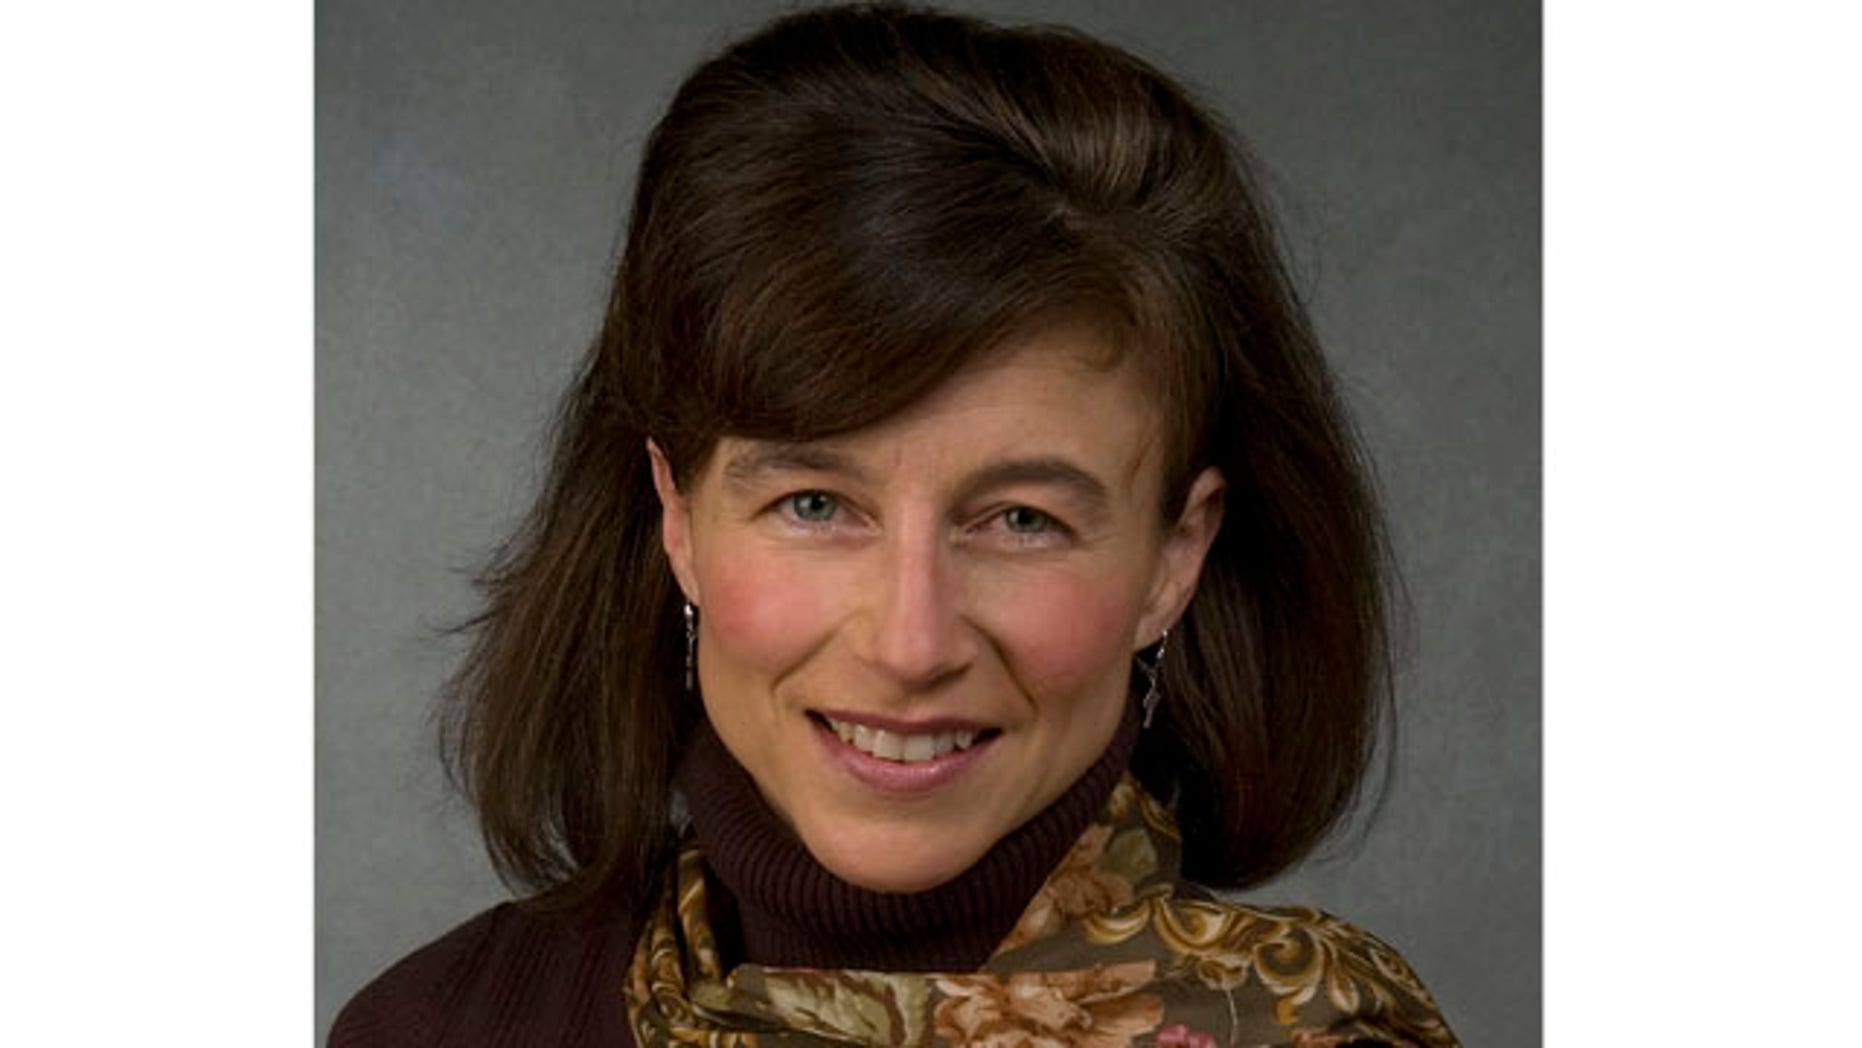 Teresa Wagner, pictured above, is suing a former dean at the University of Iowa College of Law for employment discrimination after she was turned down for a faculty position. Wagner claims the law school rejected her candidacy because of her  conservative political views.